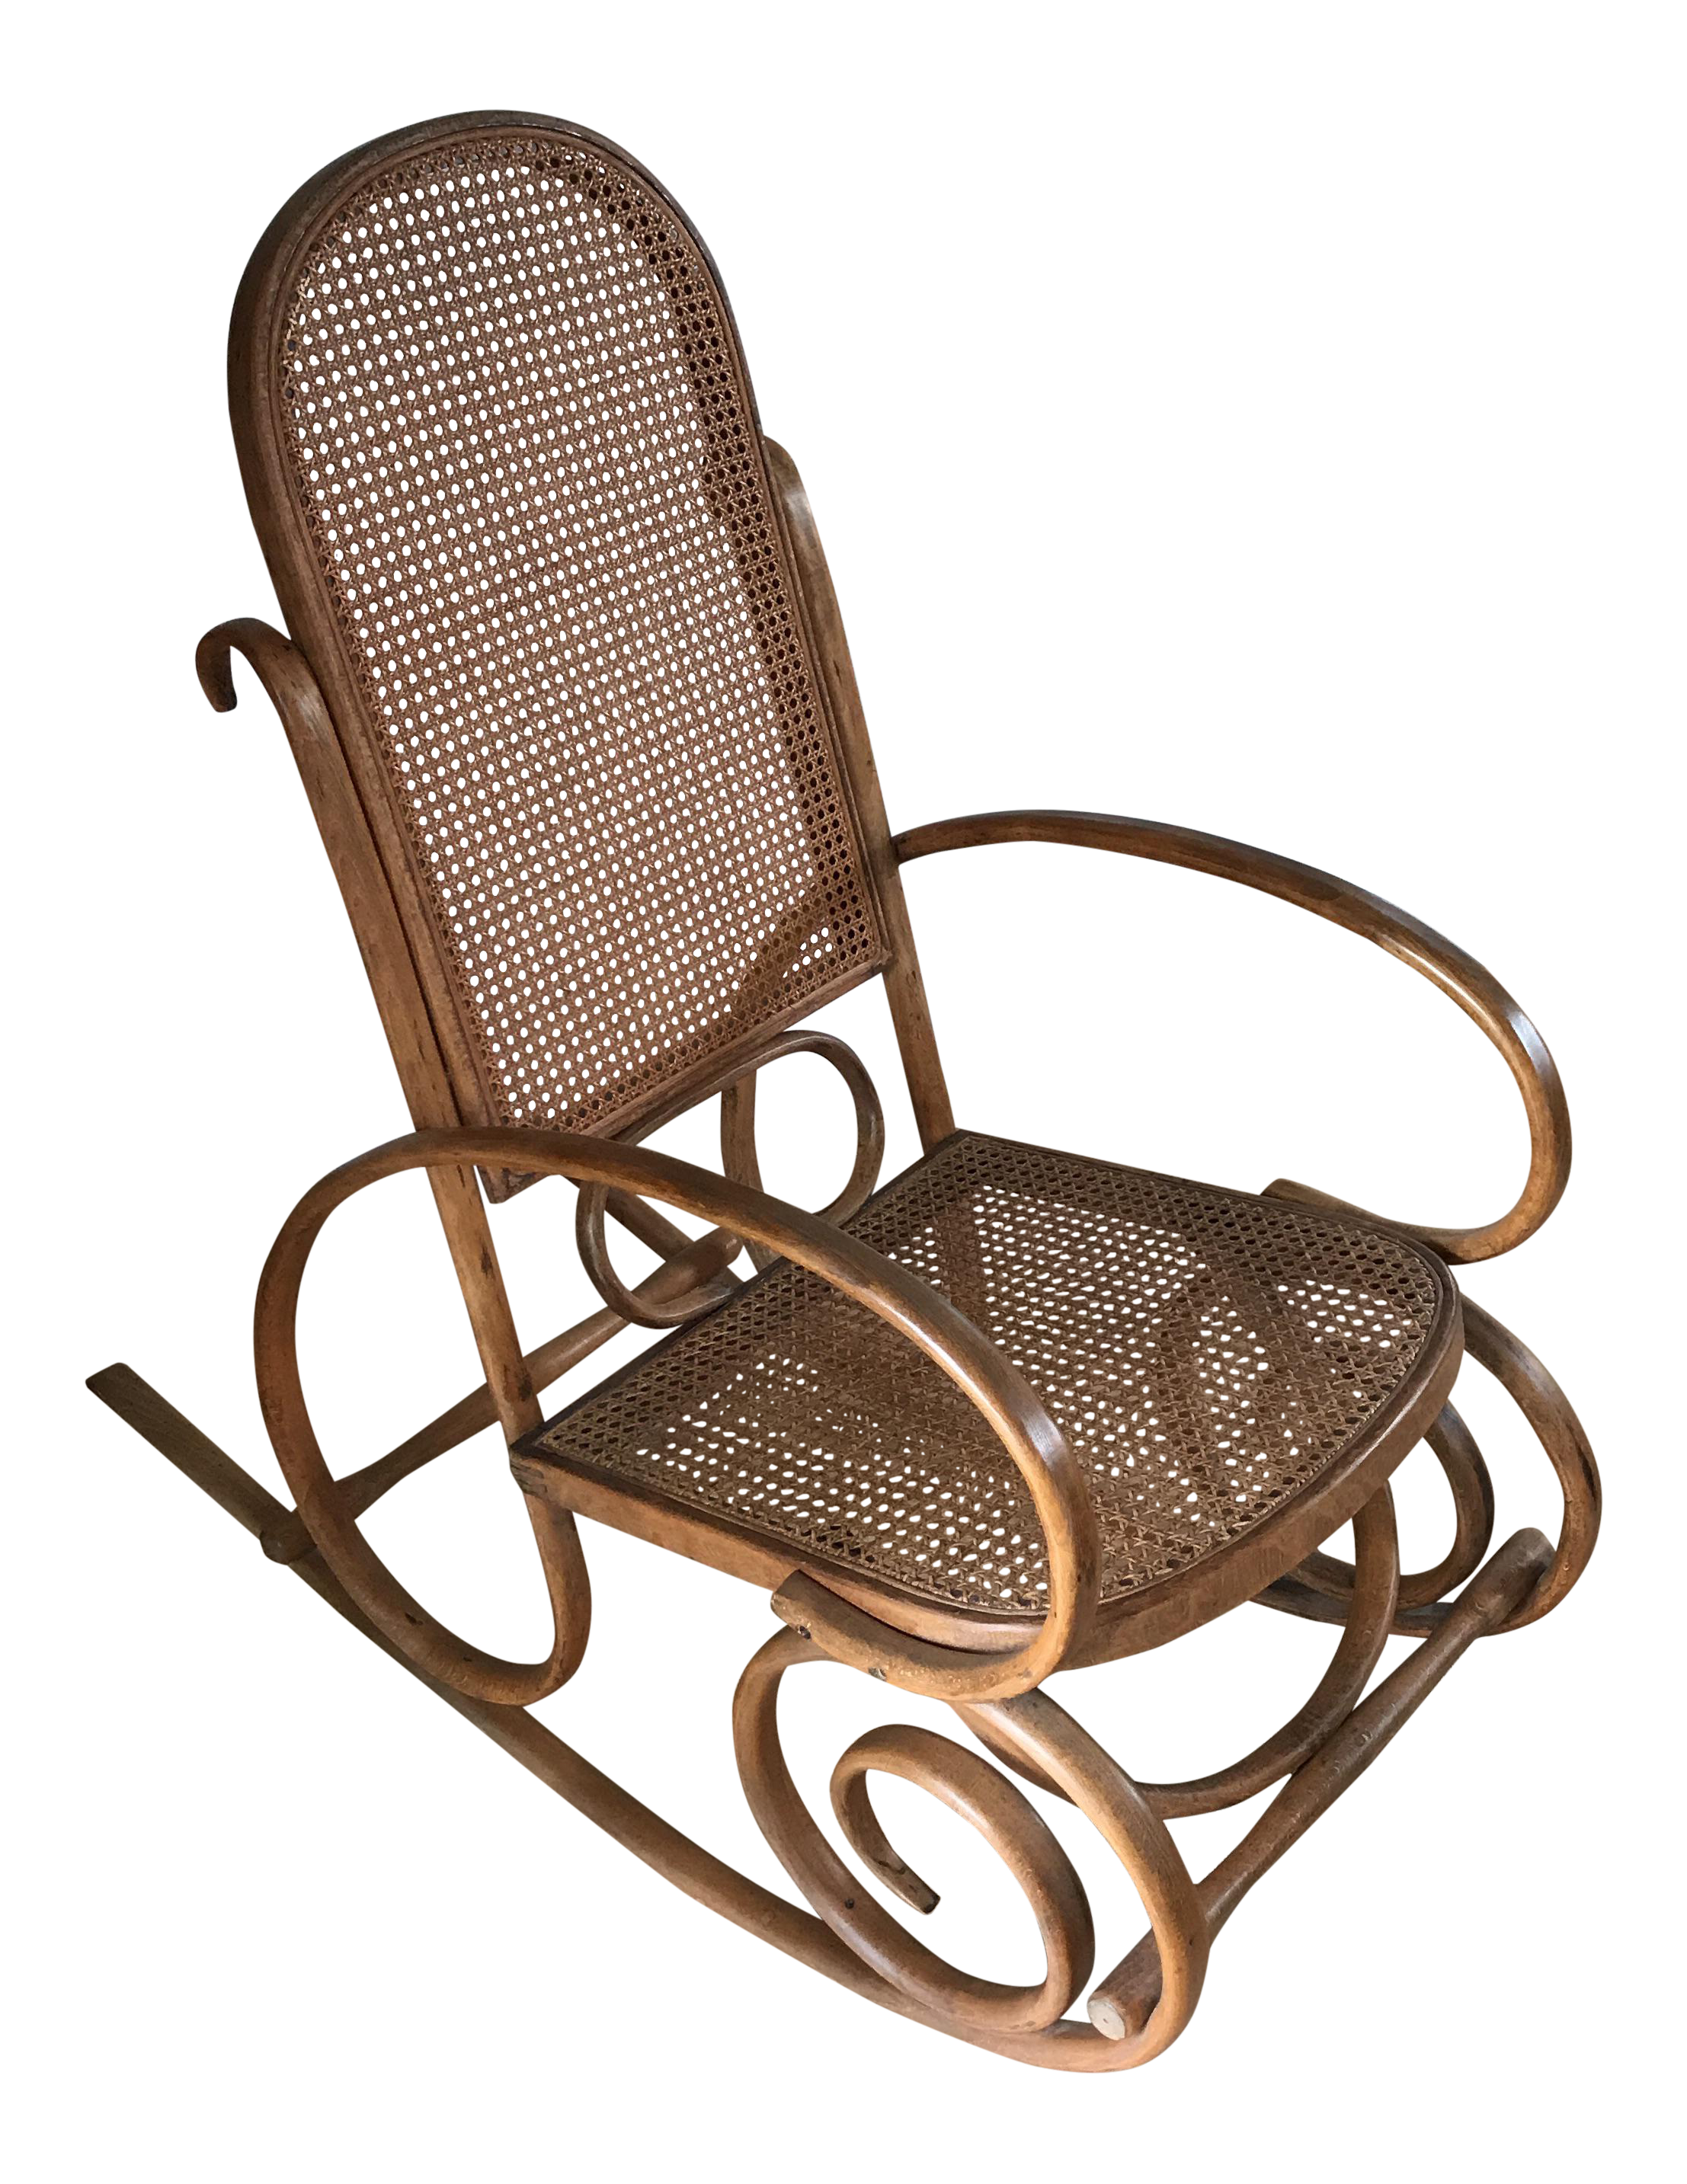 Spanish Bentwood Rocking Chair Rocker